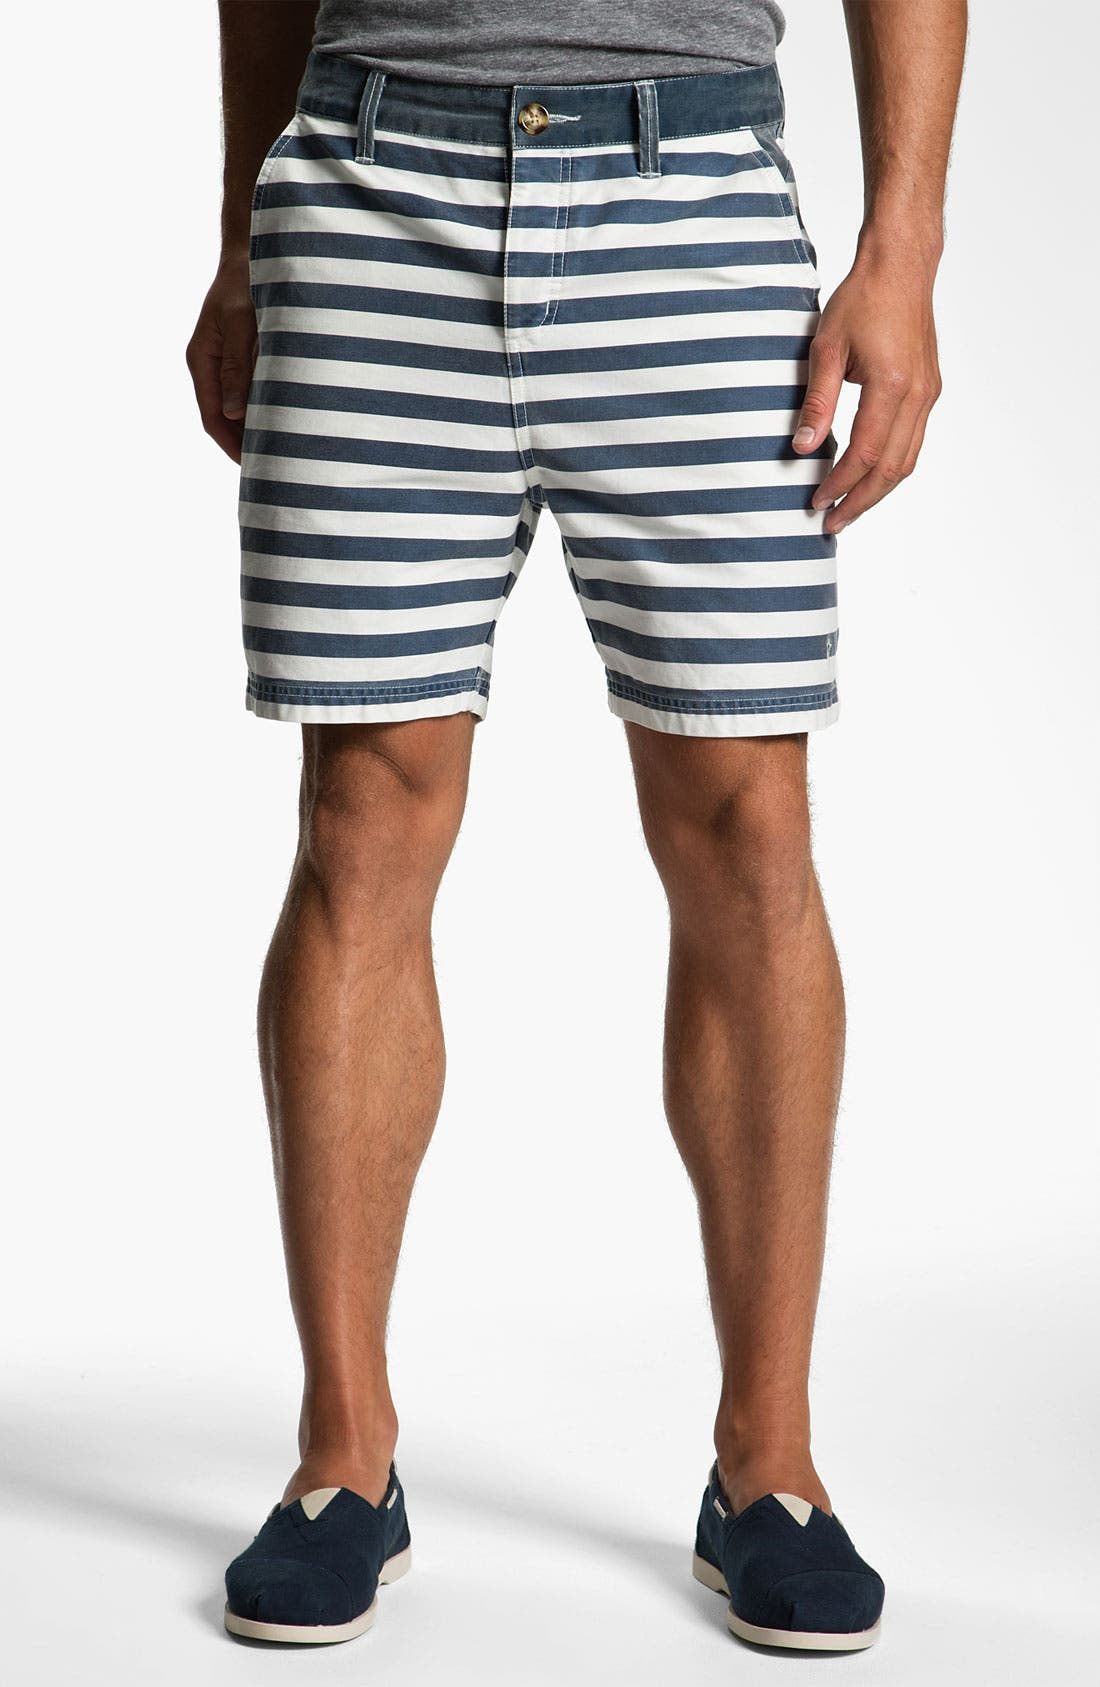 Alternate Image 1 Selected - Zanerobe 'Mallorca' Shorts